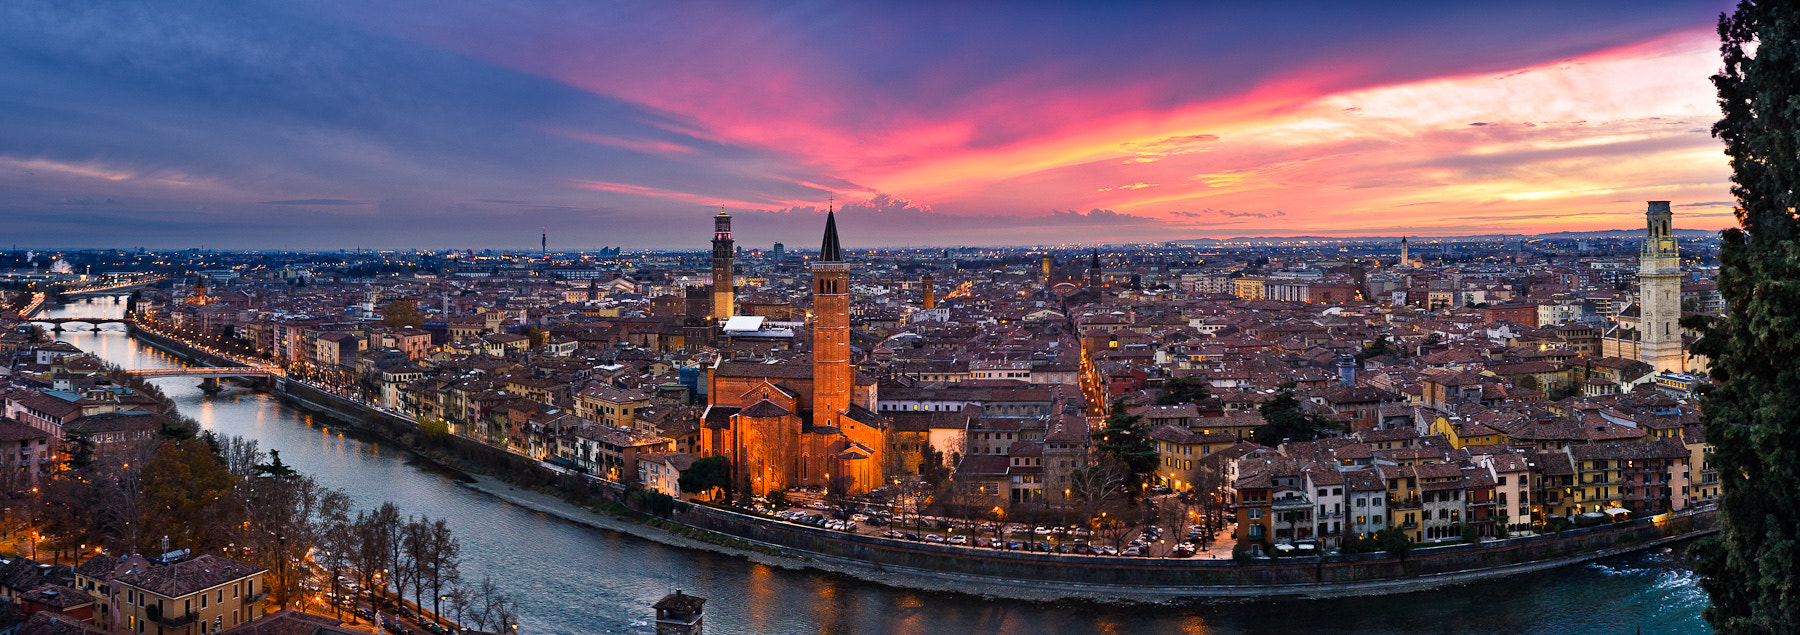 Photograph Sunset at Verona by Slava Mylnikov on 500px